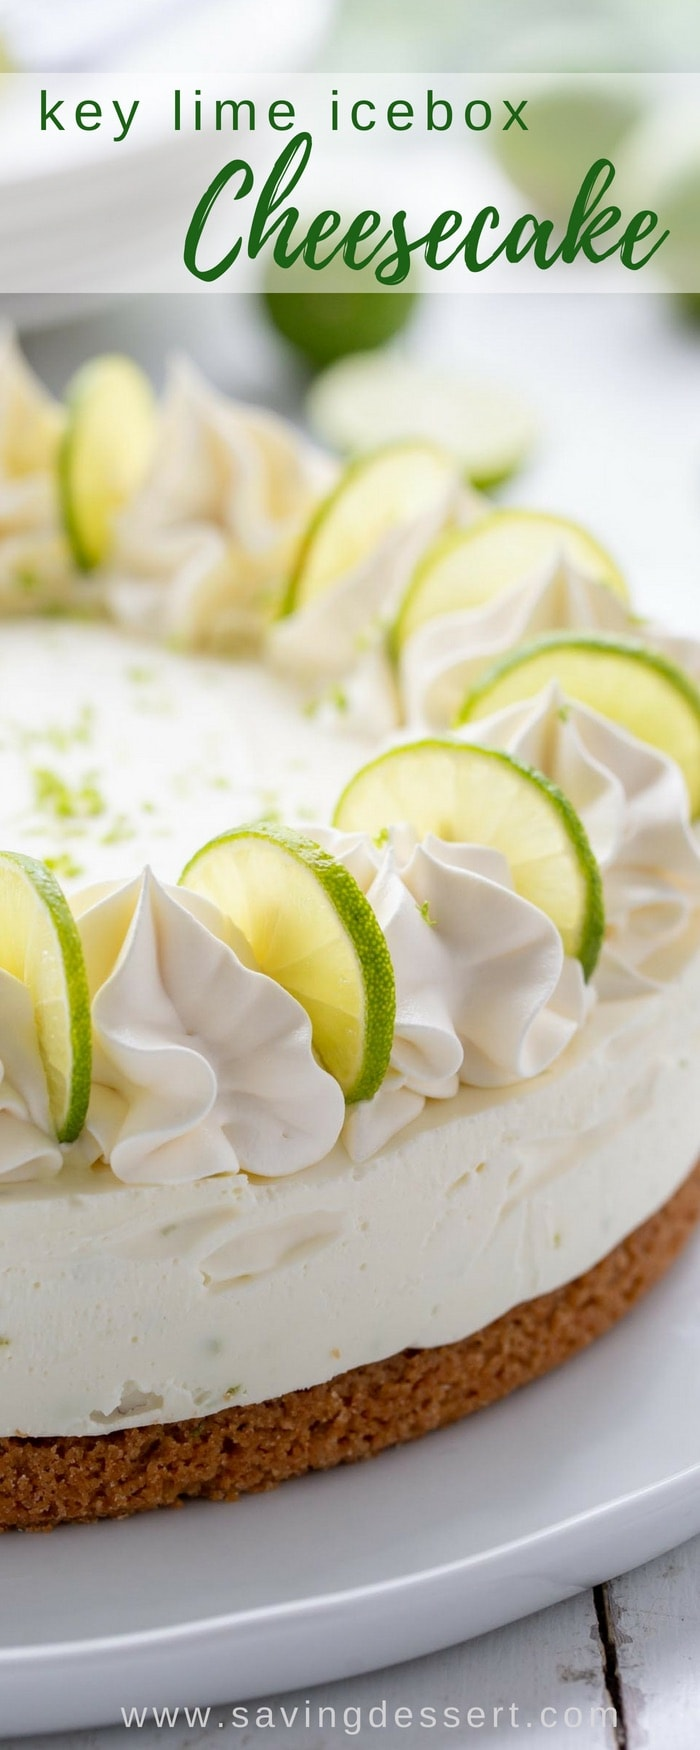 Key Lime Icebox Cheesecake - a terrific summer dessert with a light and creamy no-bake filling, a not-too-sweet tart and tangy flavor, and a perfectly crunchy graham cracker crust. #savingroomfordessert #cheesecake #nobakecheesecake #keylime #keylimecheesecake #makeaheaddessert #summerdessert